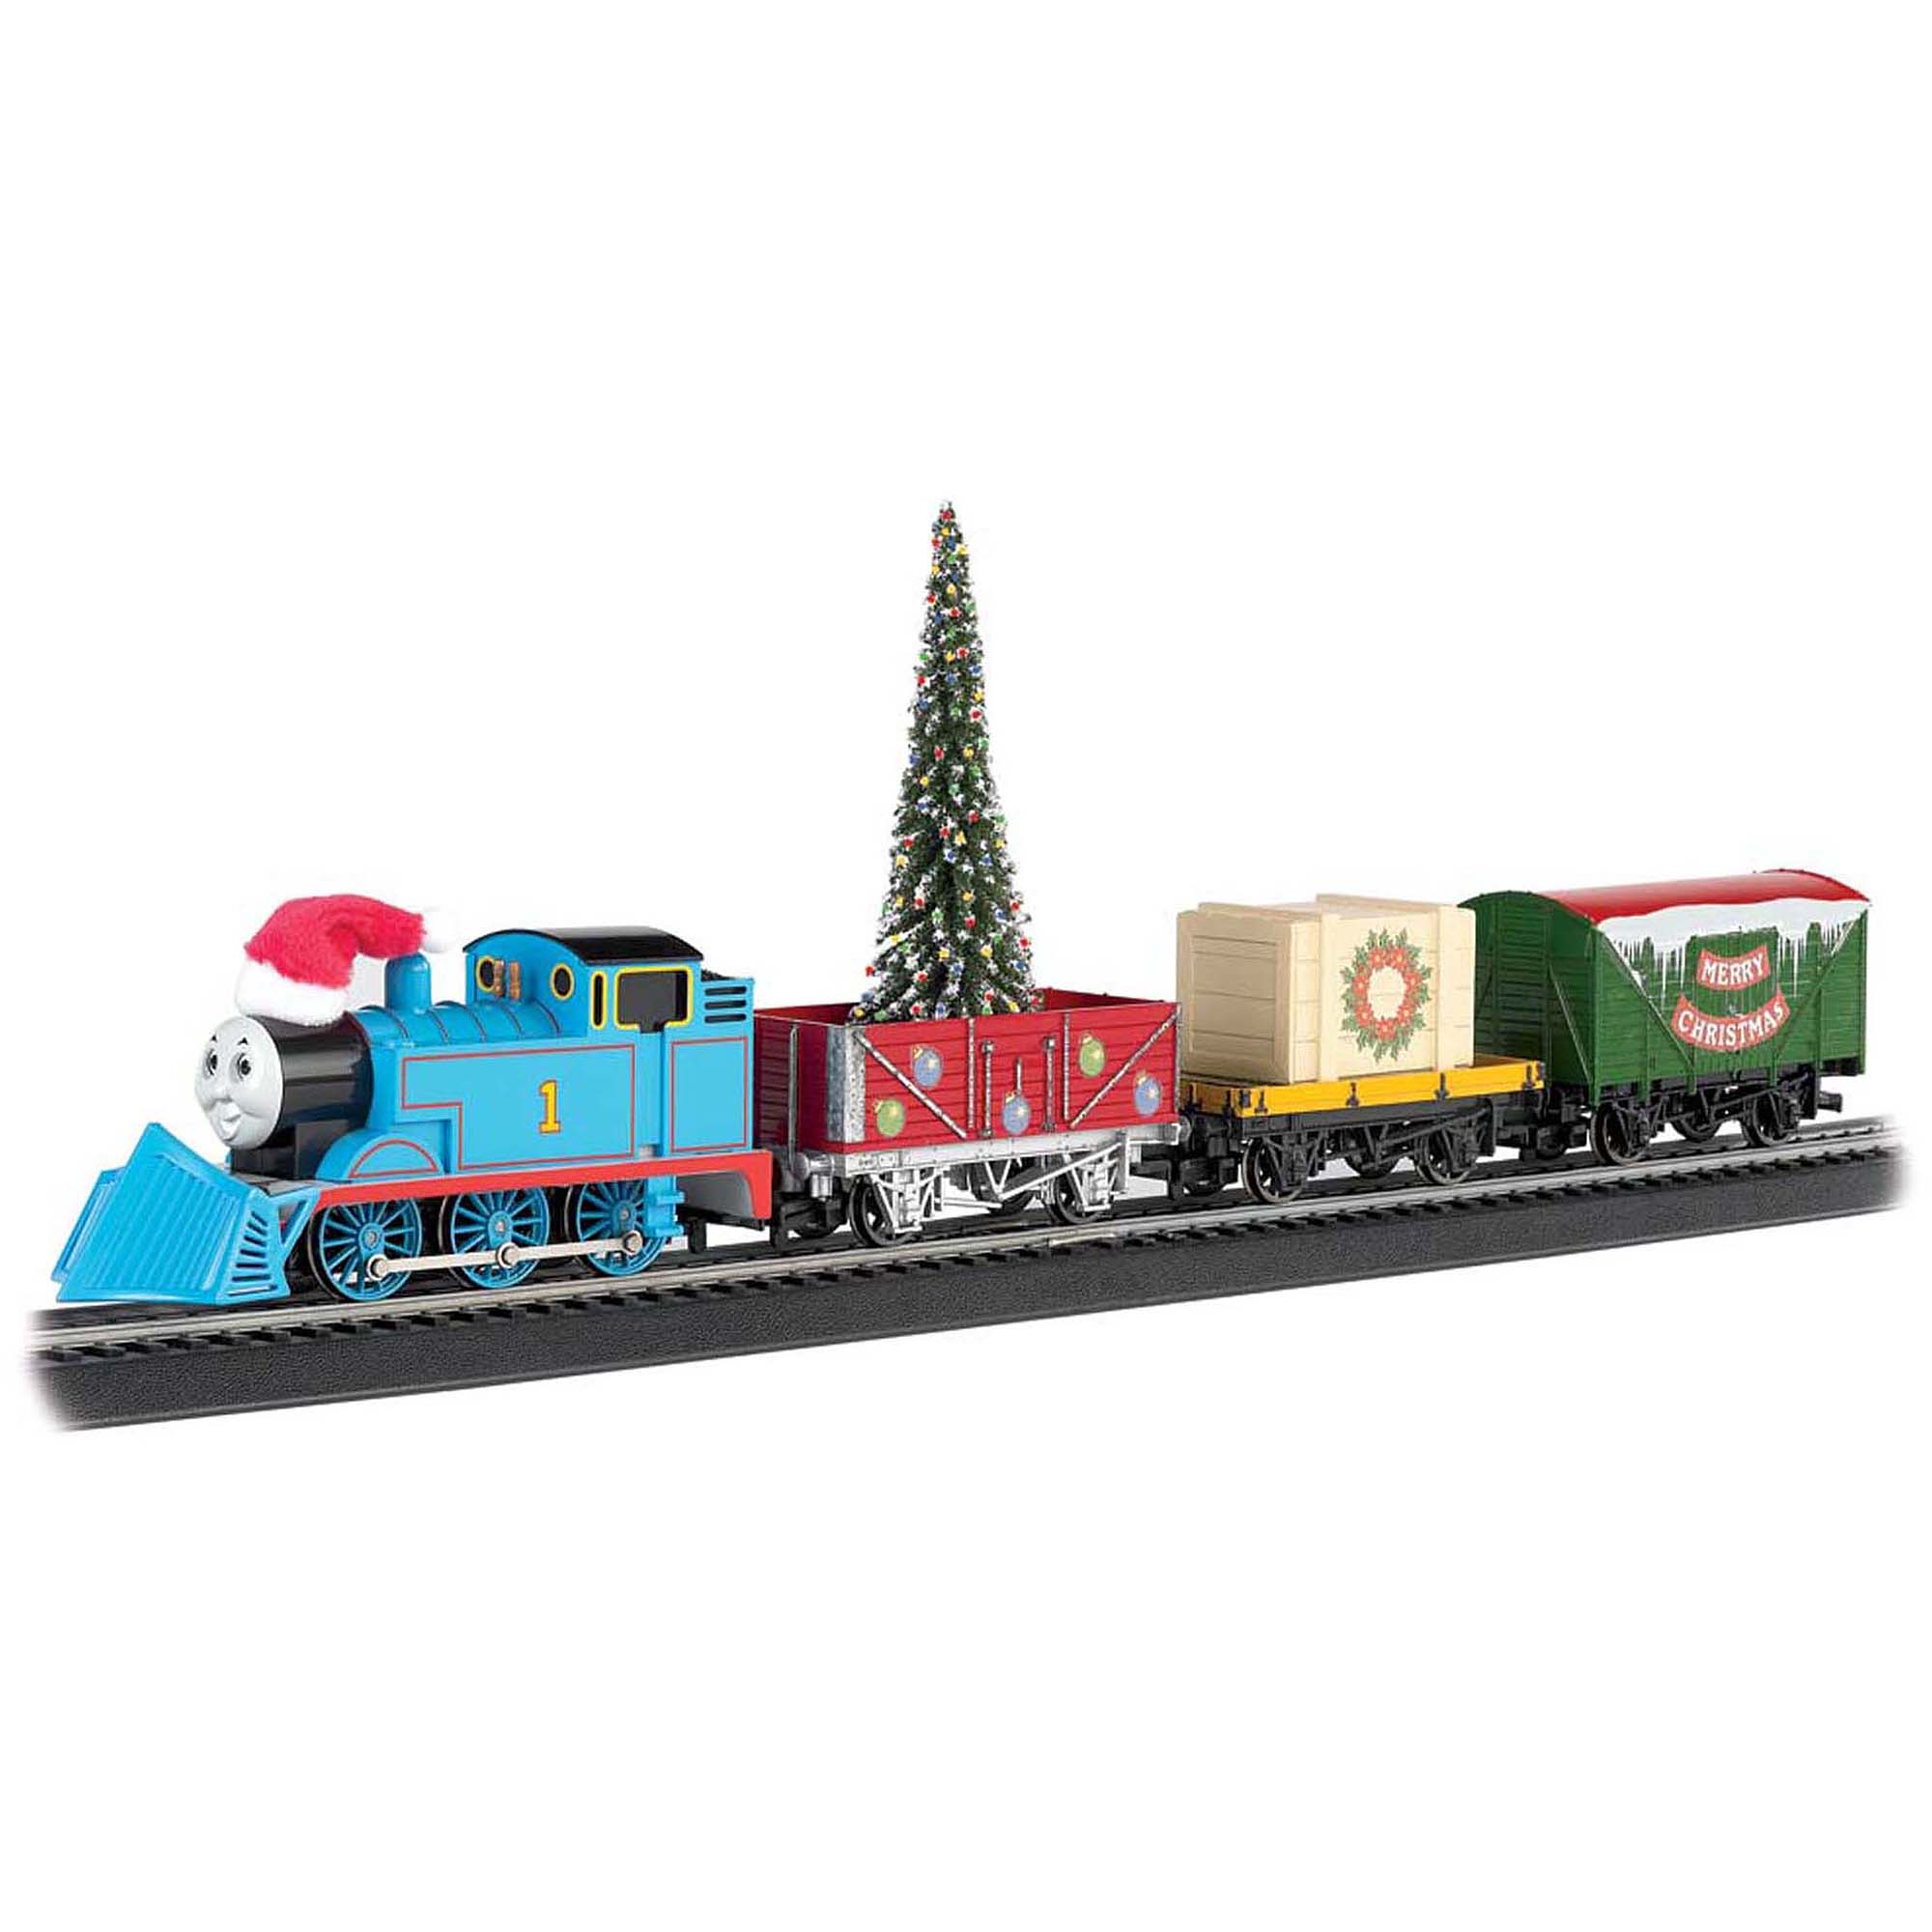 Thomas Electric Trains Video Not Lossing Wiring Diagram Bachmann And Friends Christmas Lionel Train Mini